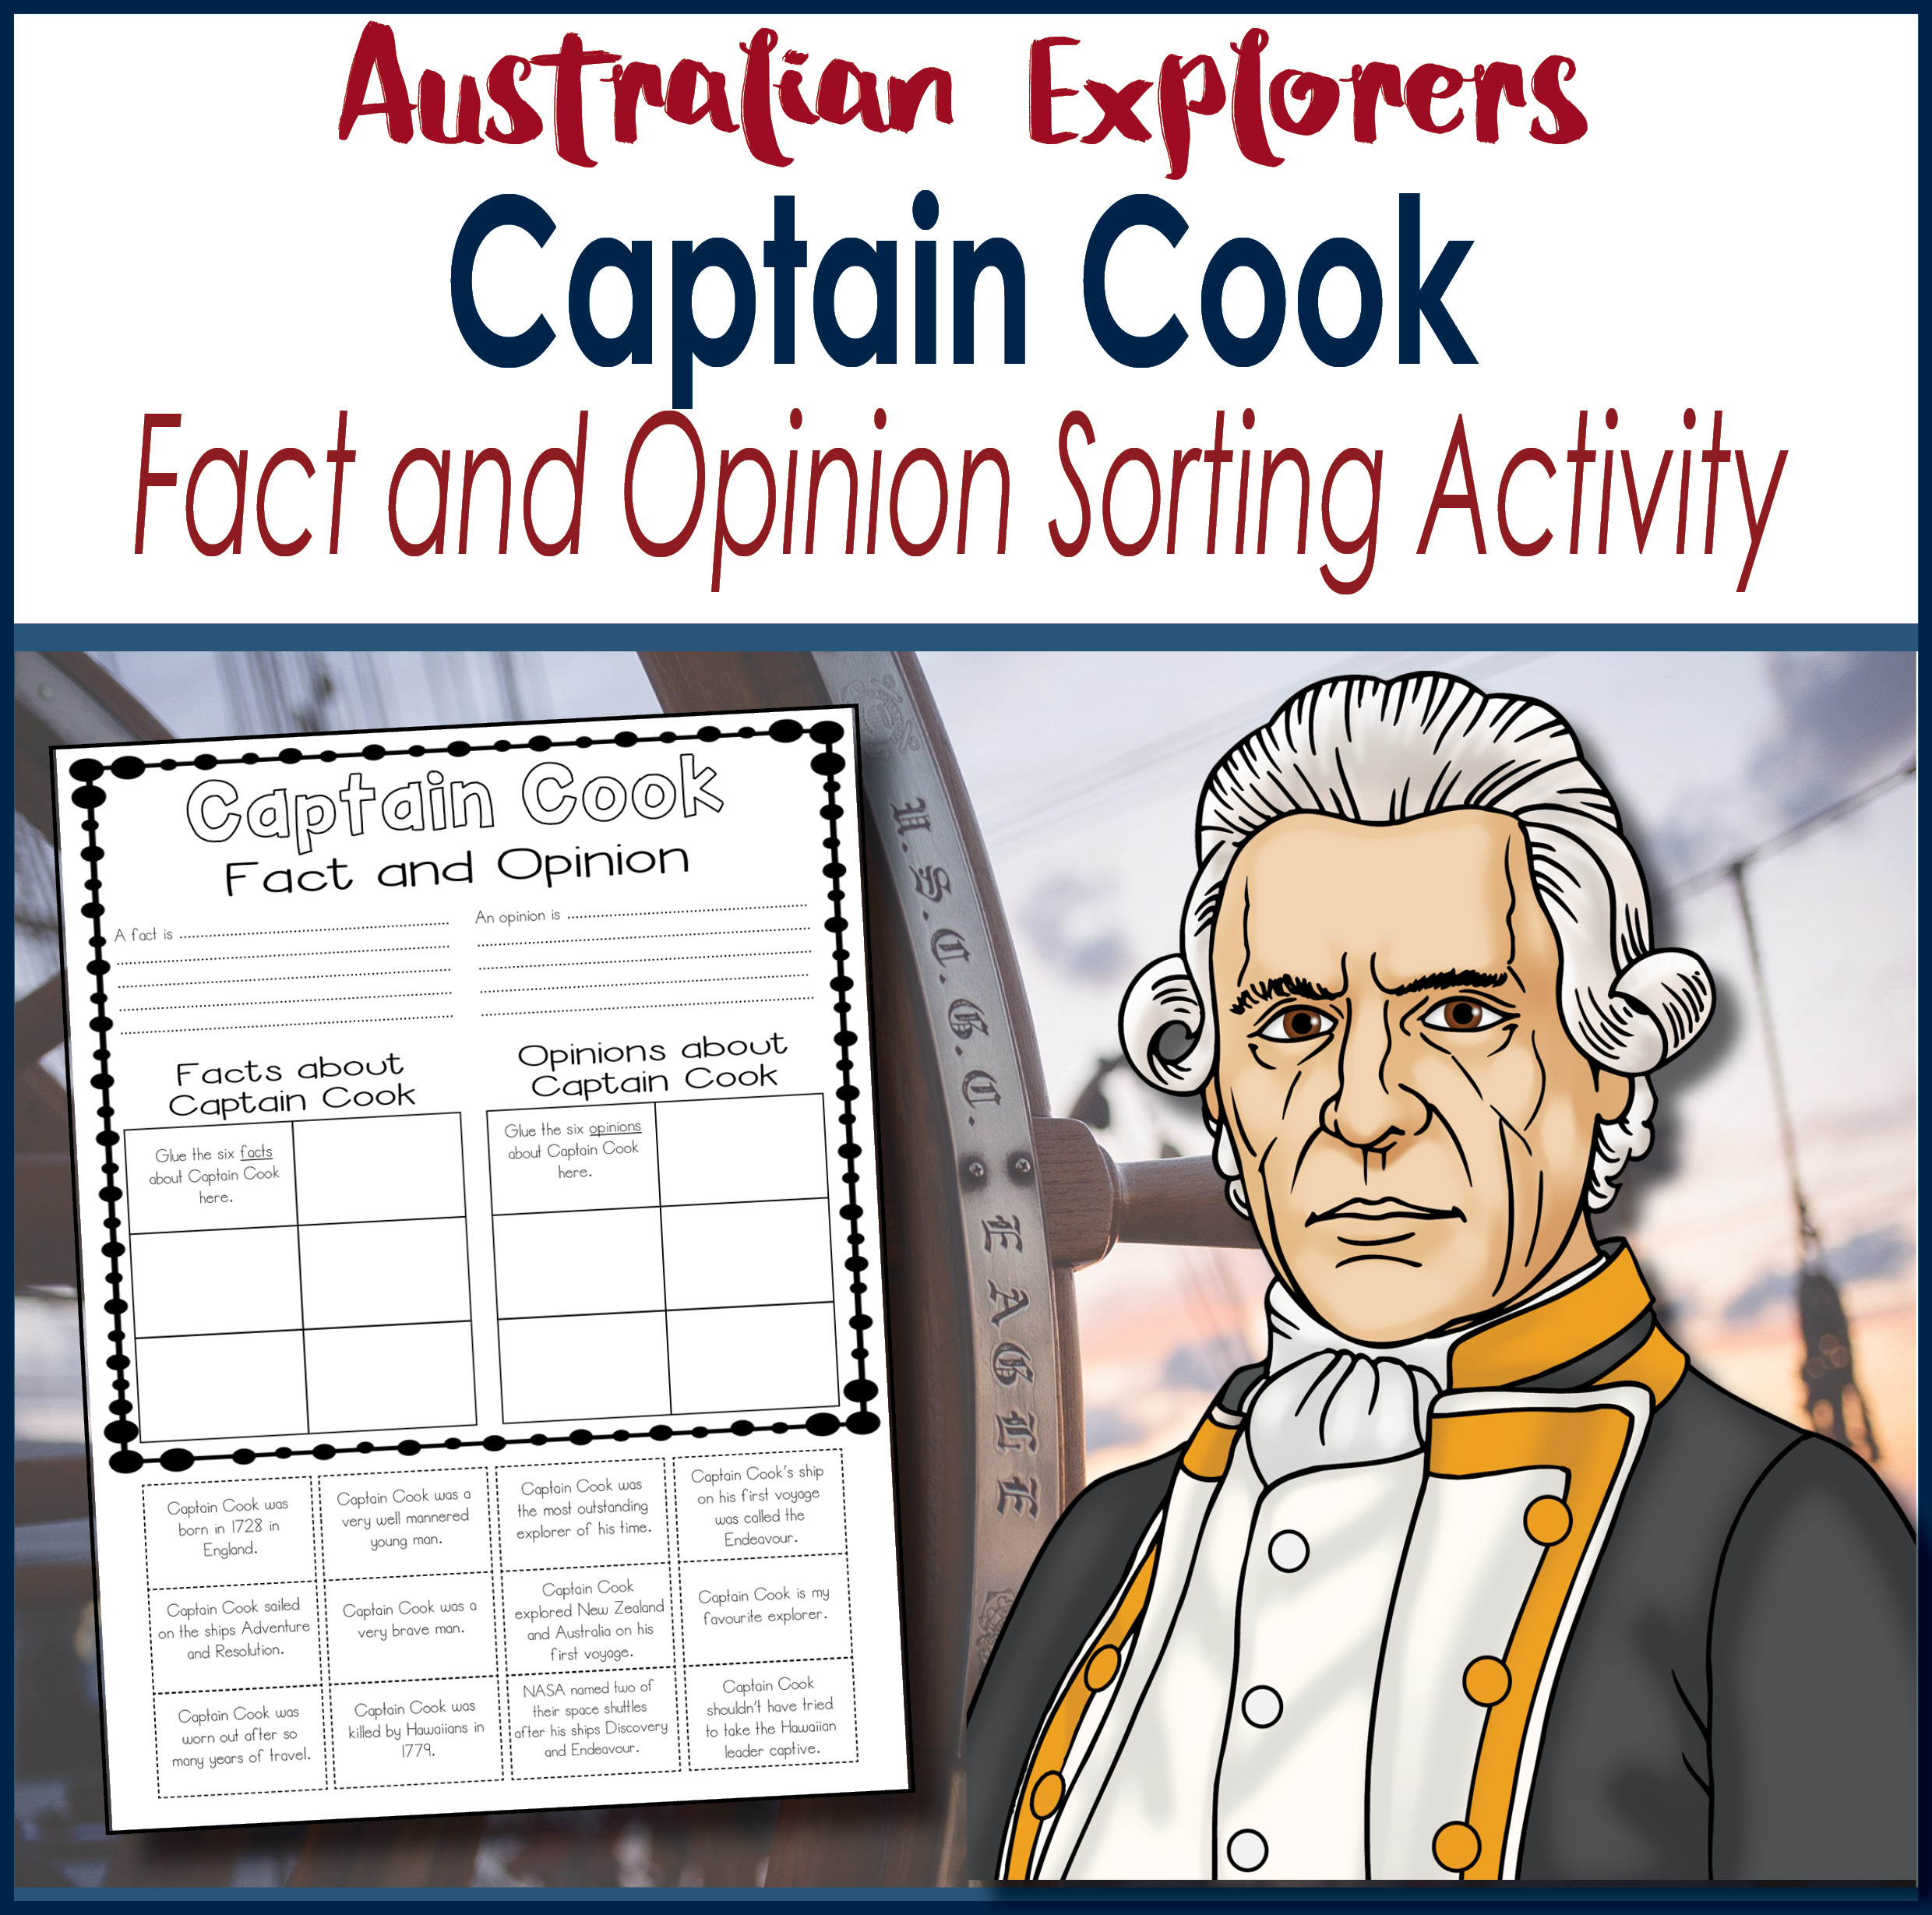 Captain Cook Fact and Opinion Sorting Activity